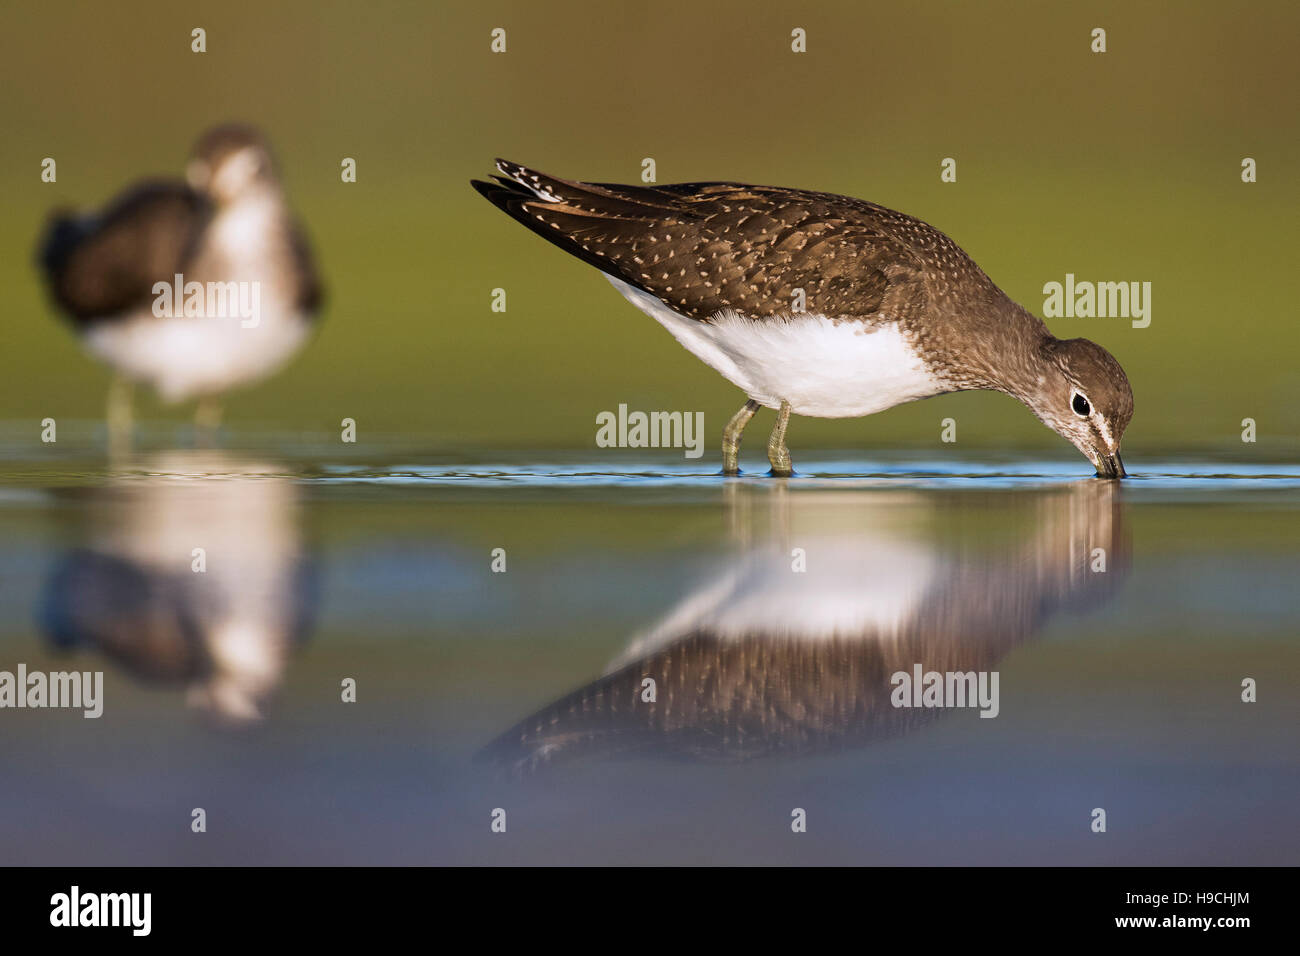 Two green sandpipers (Tringa ochropus) foraging in shallow water of mudflat - Stock Image